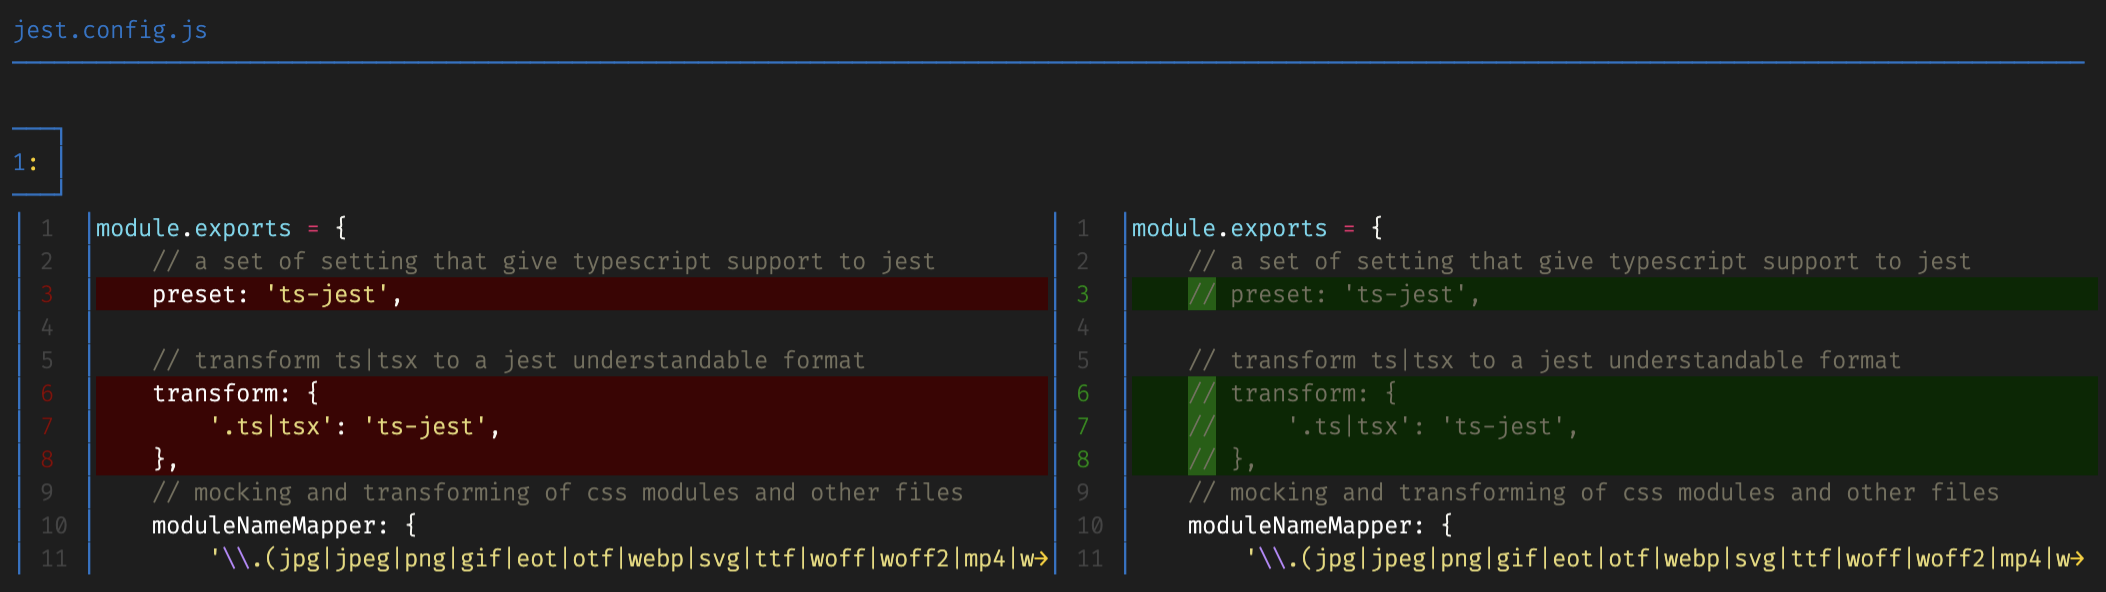 showing the git diff of the jest.config.js